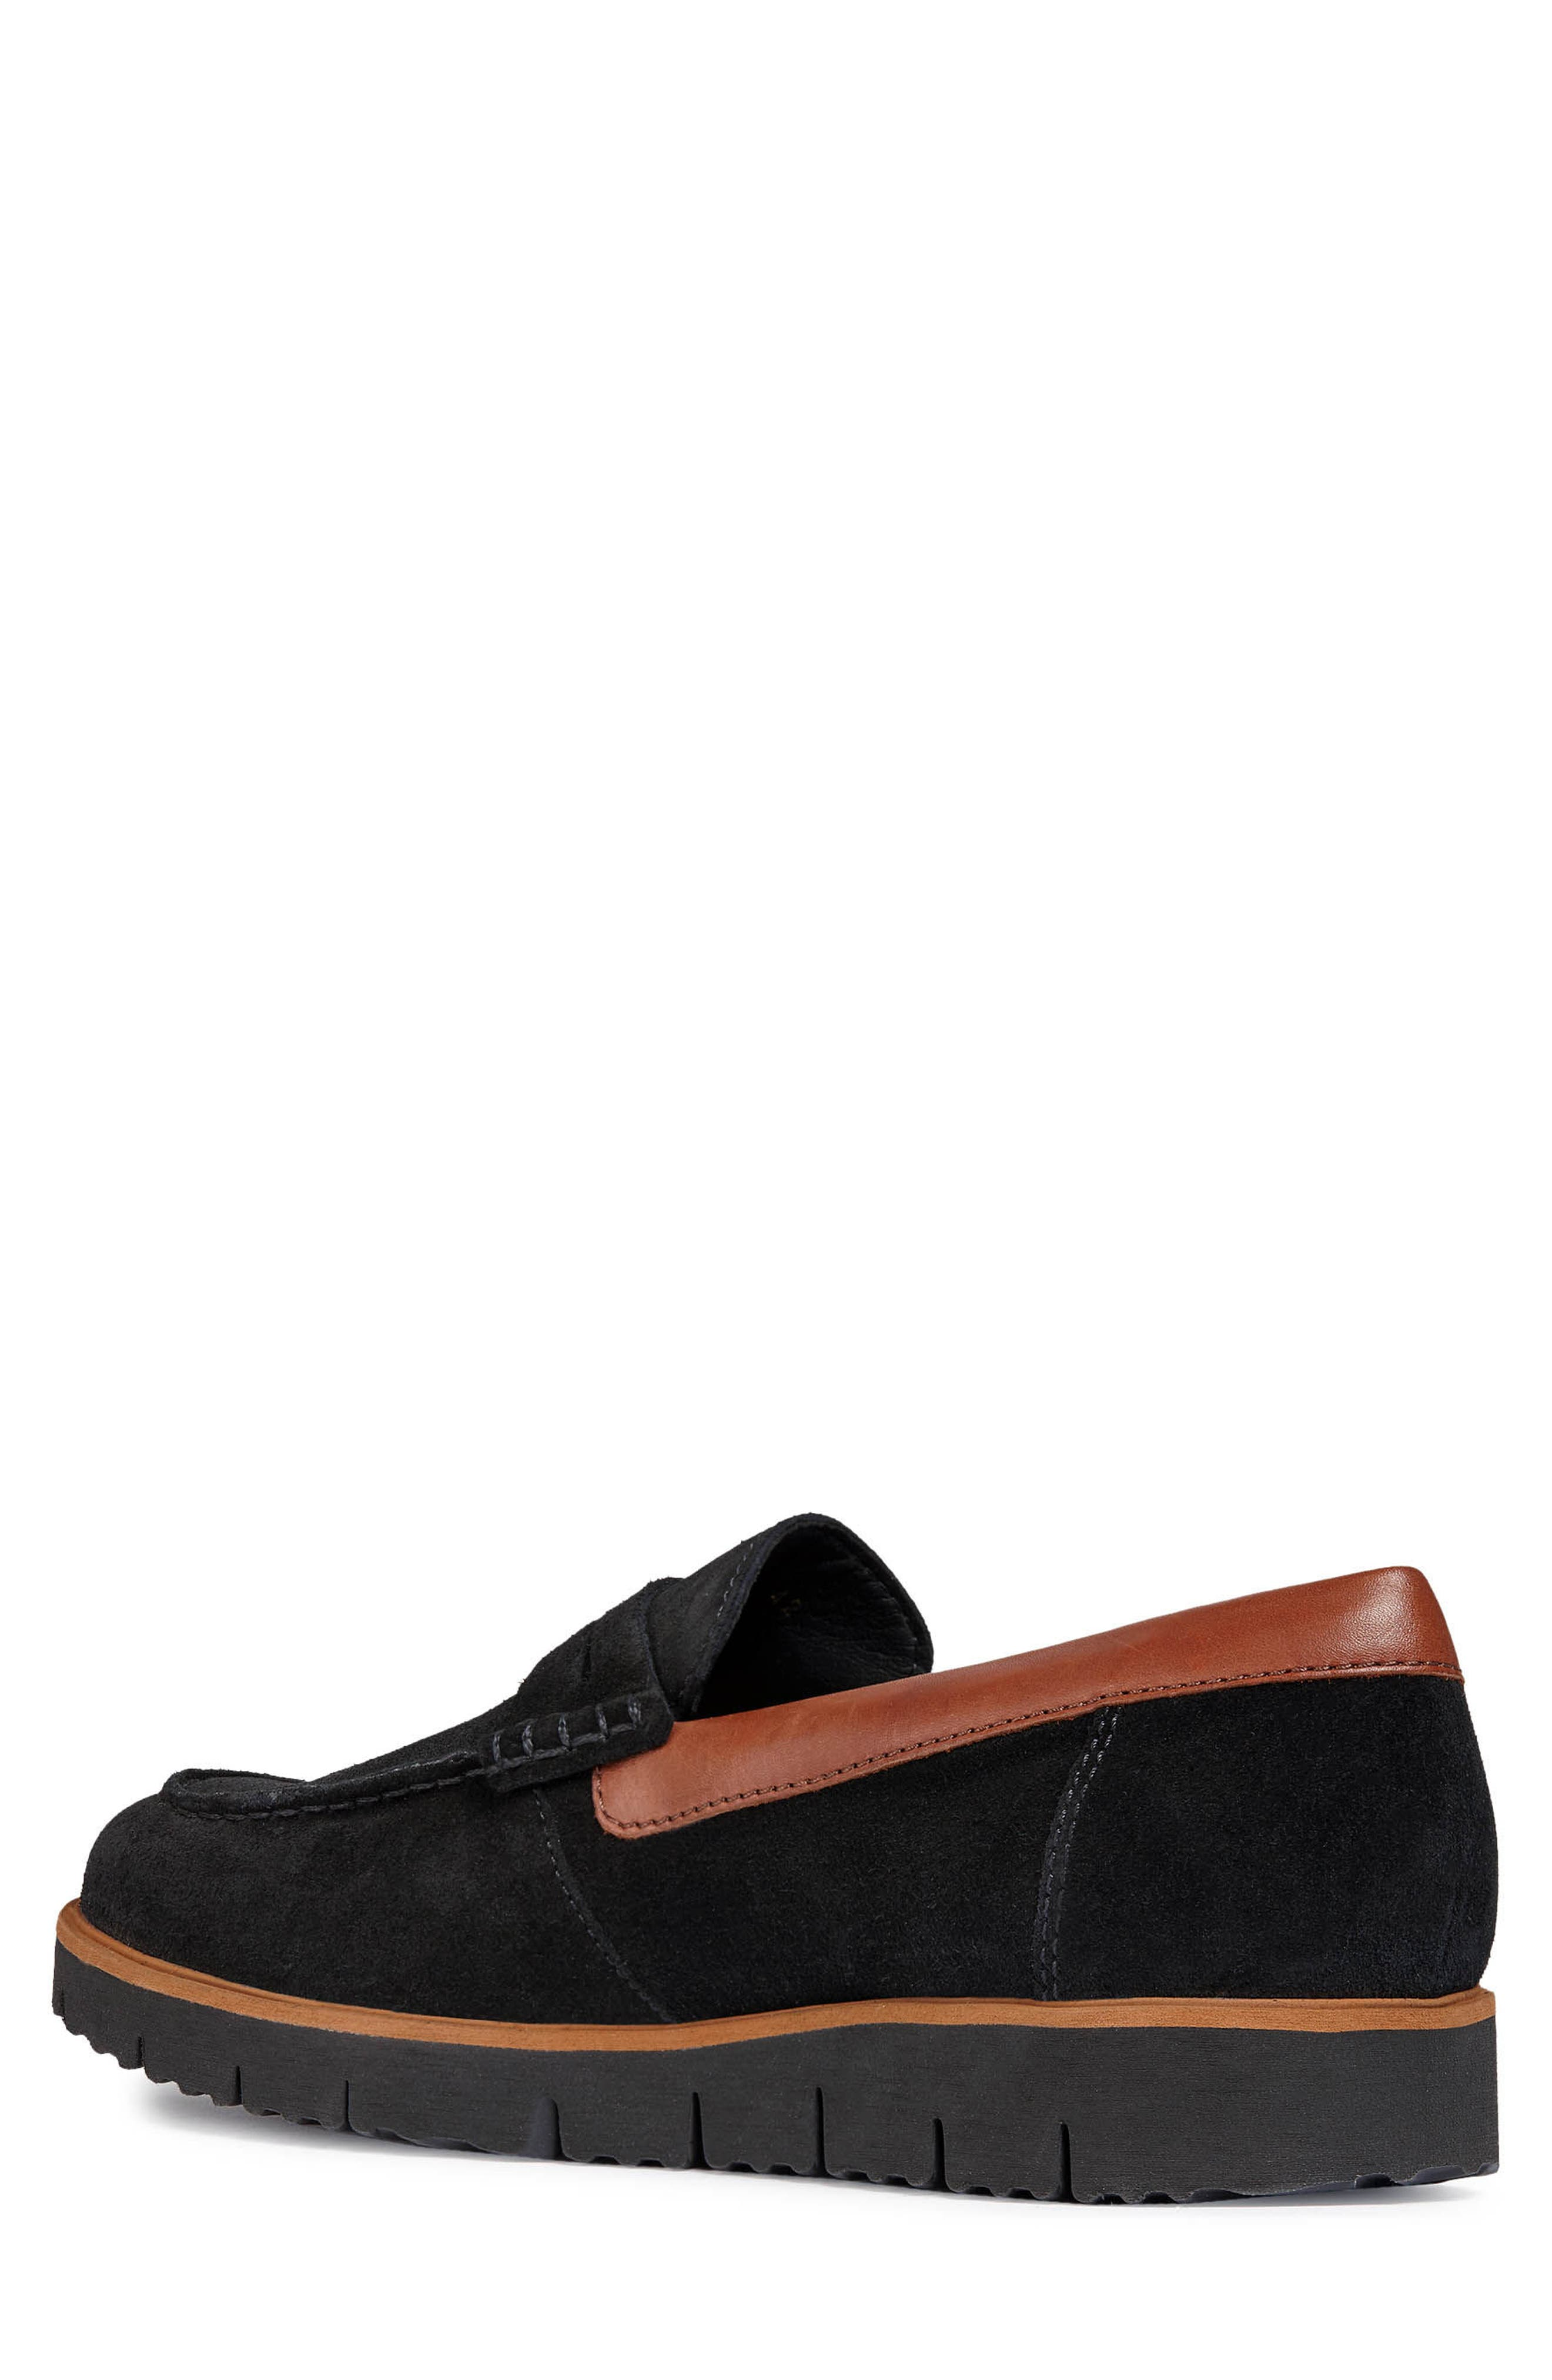 New Pluges 6 Penny Loafer,                             Alternate thumbnail 2, color,                             002